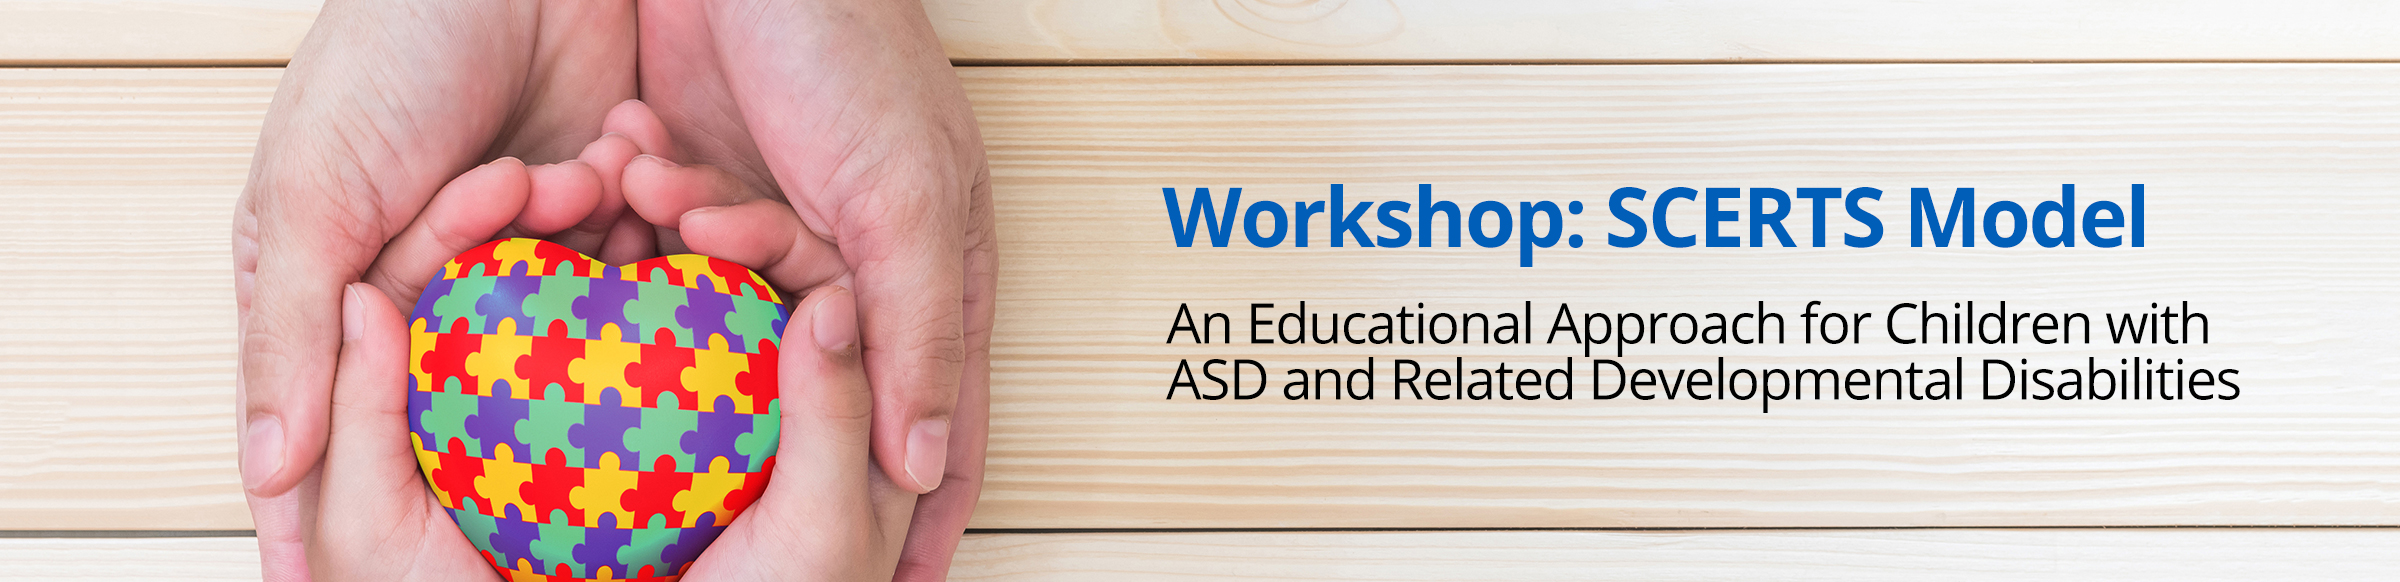 Image for HDSB SCERTS Workshop